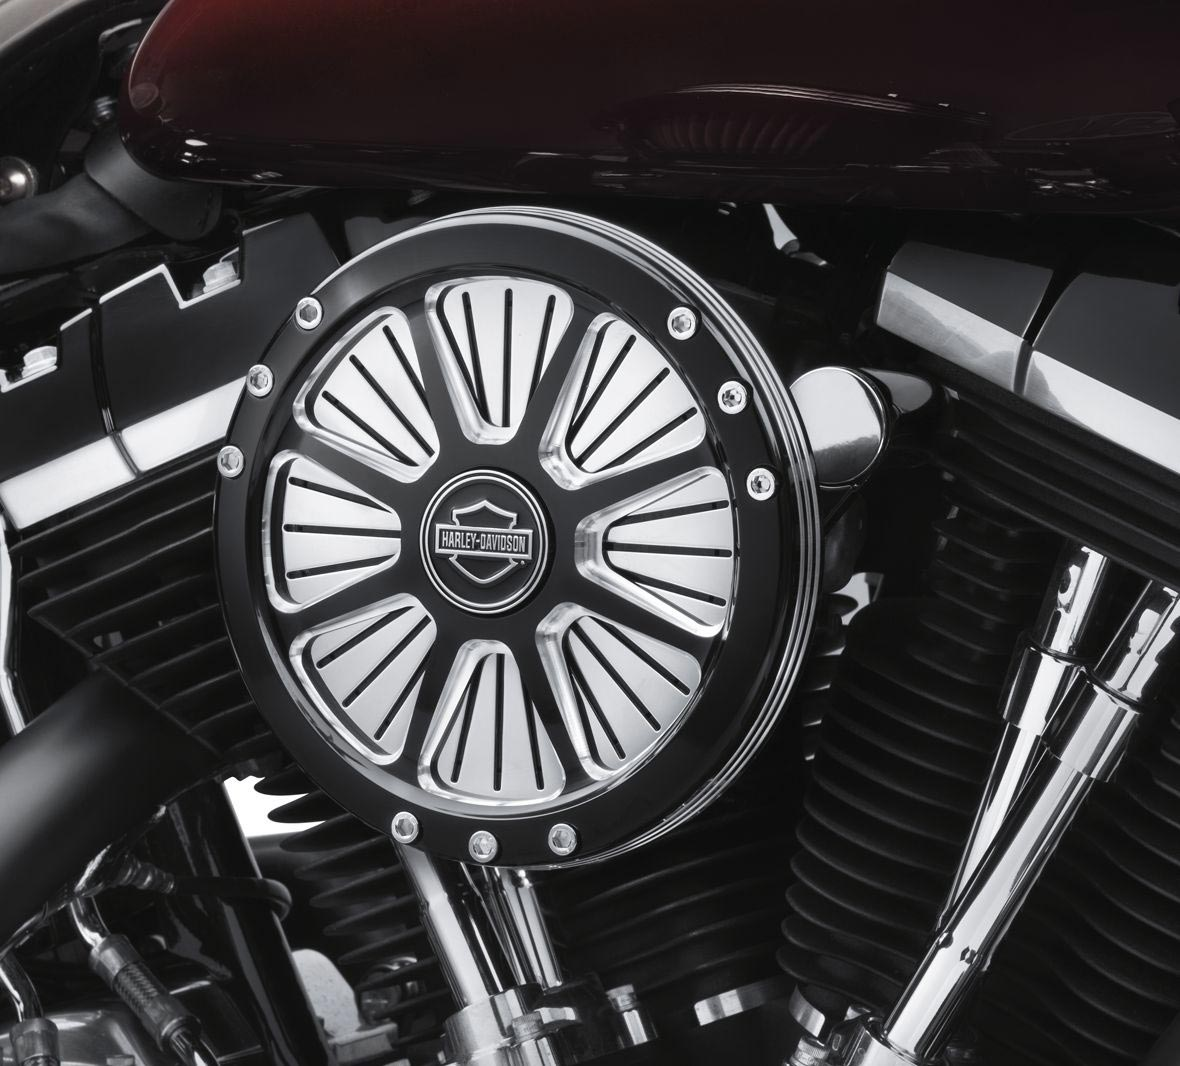 29400178 Burst Collection Screamin' Eagle Performance Air Cleaner Kit at Thunderbike Shop